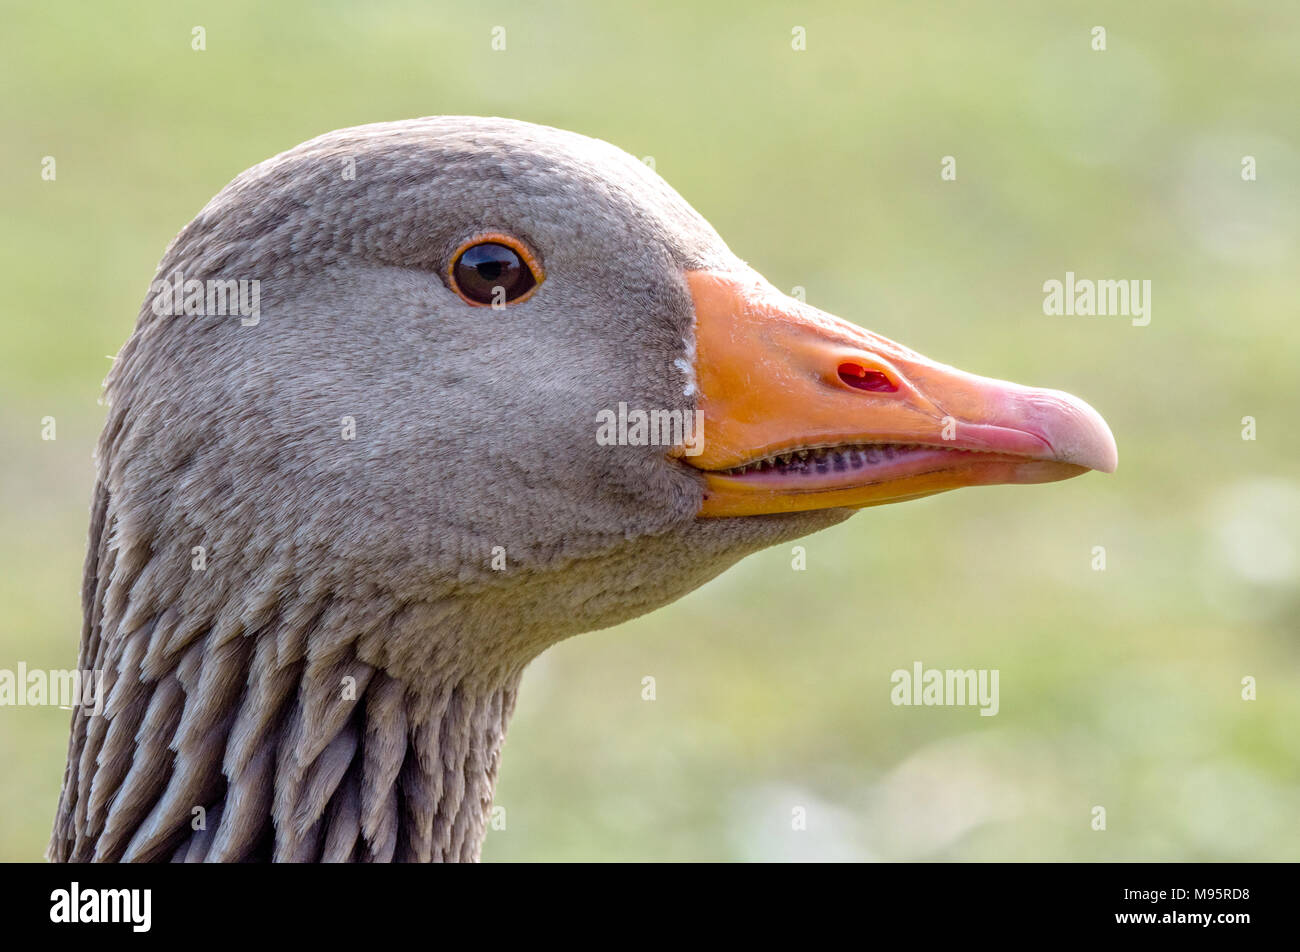 Head portrait of greylag goose Anser anser with characteristic 'toothed' bill at Slimbridge Wildfowl and Wetlands Centre Gloucestershire UK - Stock Image